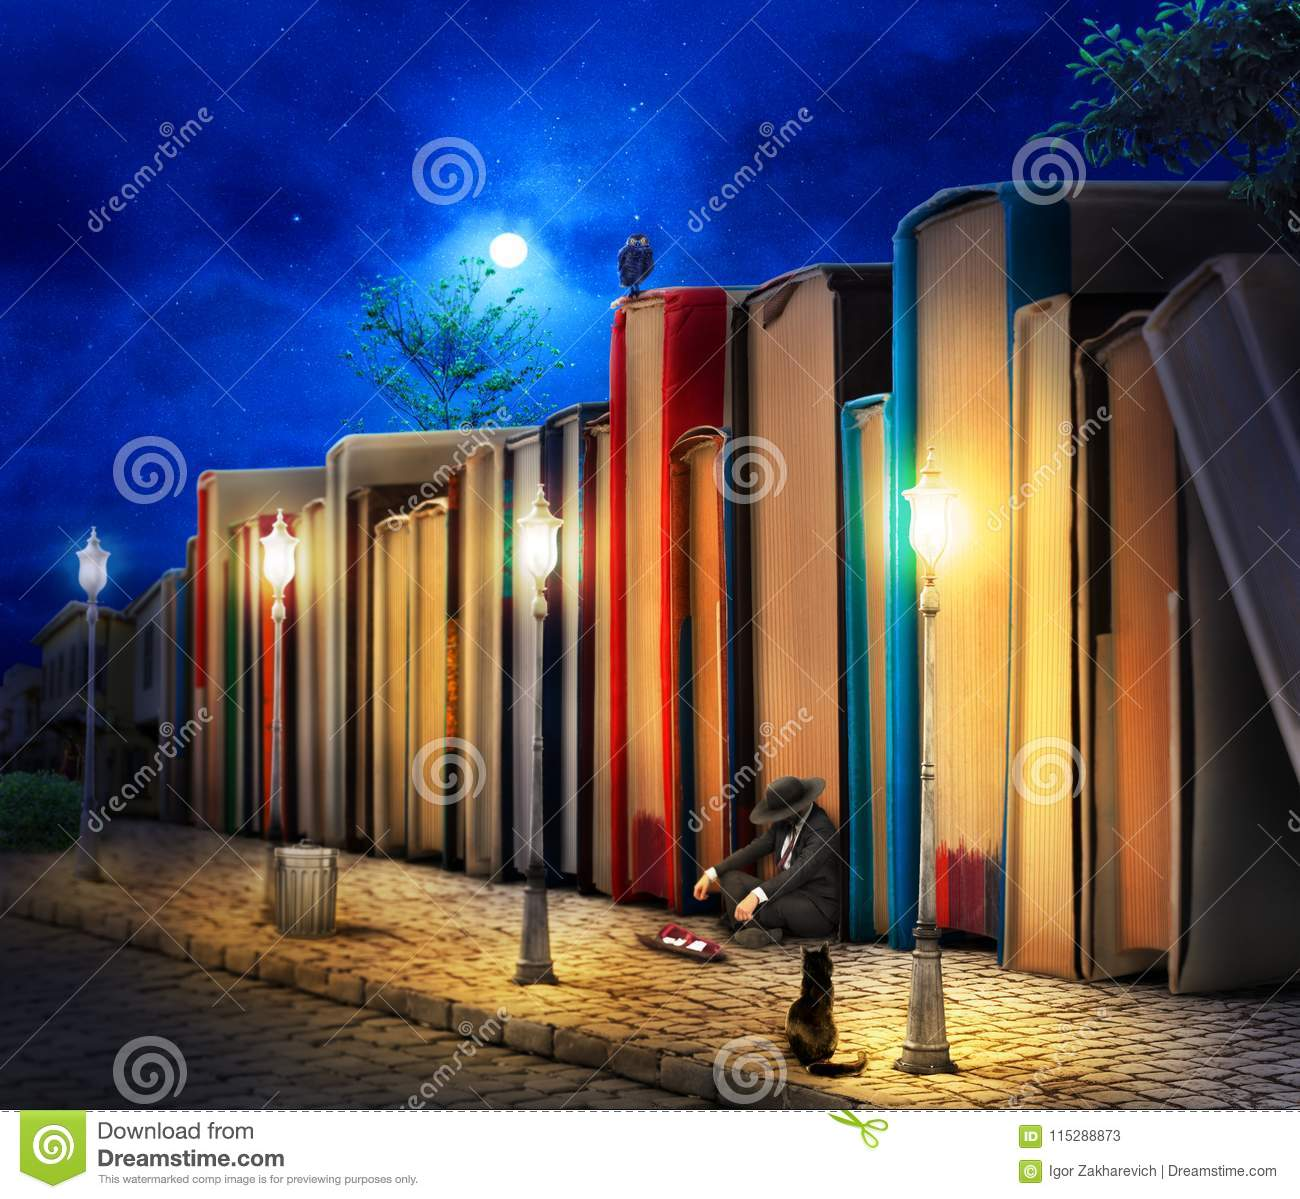 Reading concept. Fantasy. Stack of book as buildings